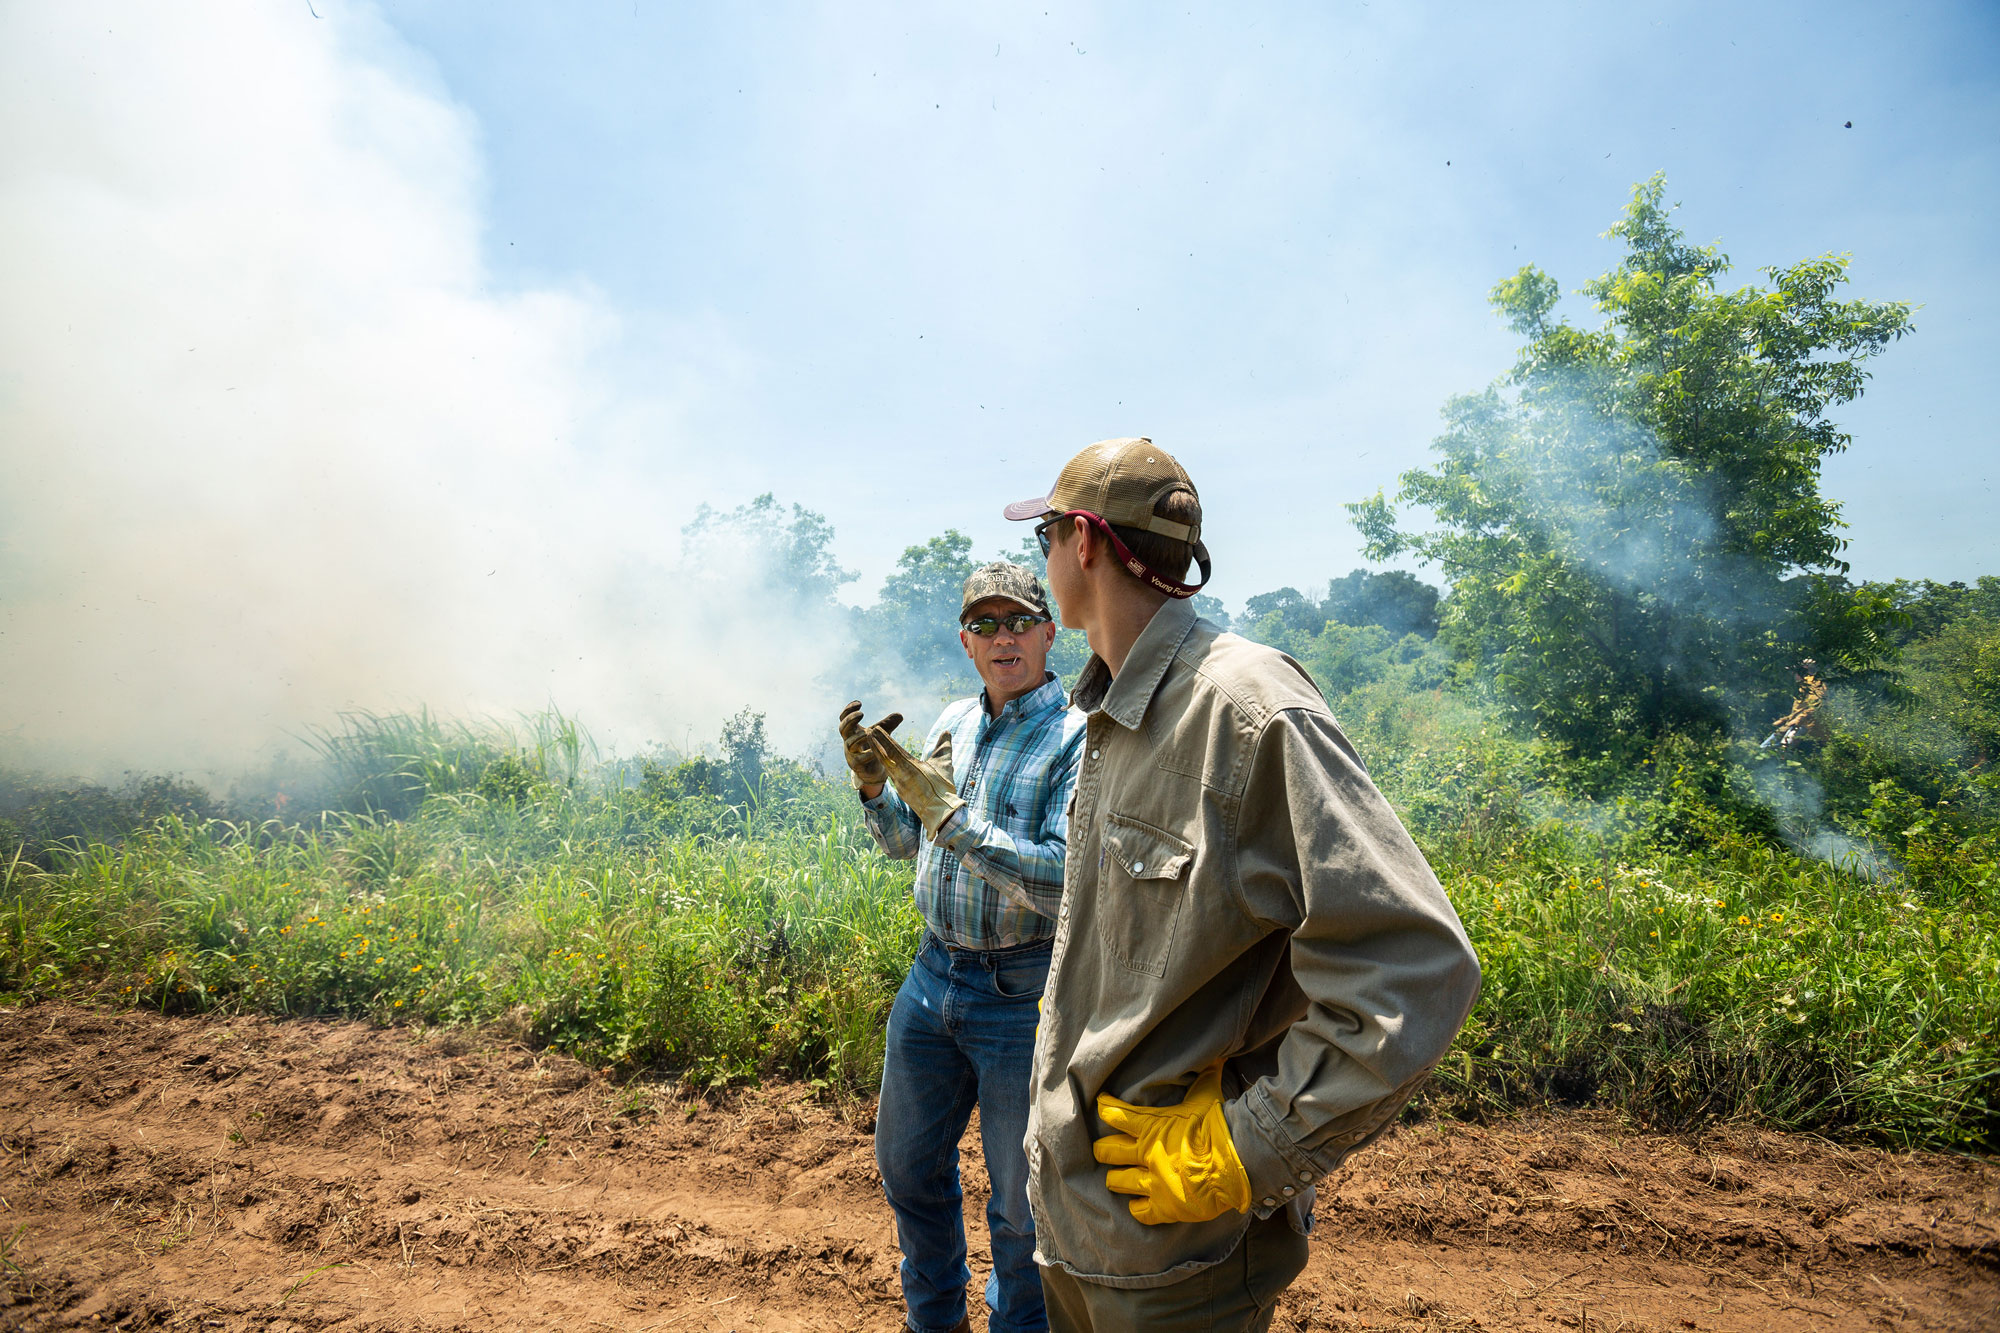 Russell Stevens at a Prescribed FIre event